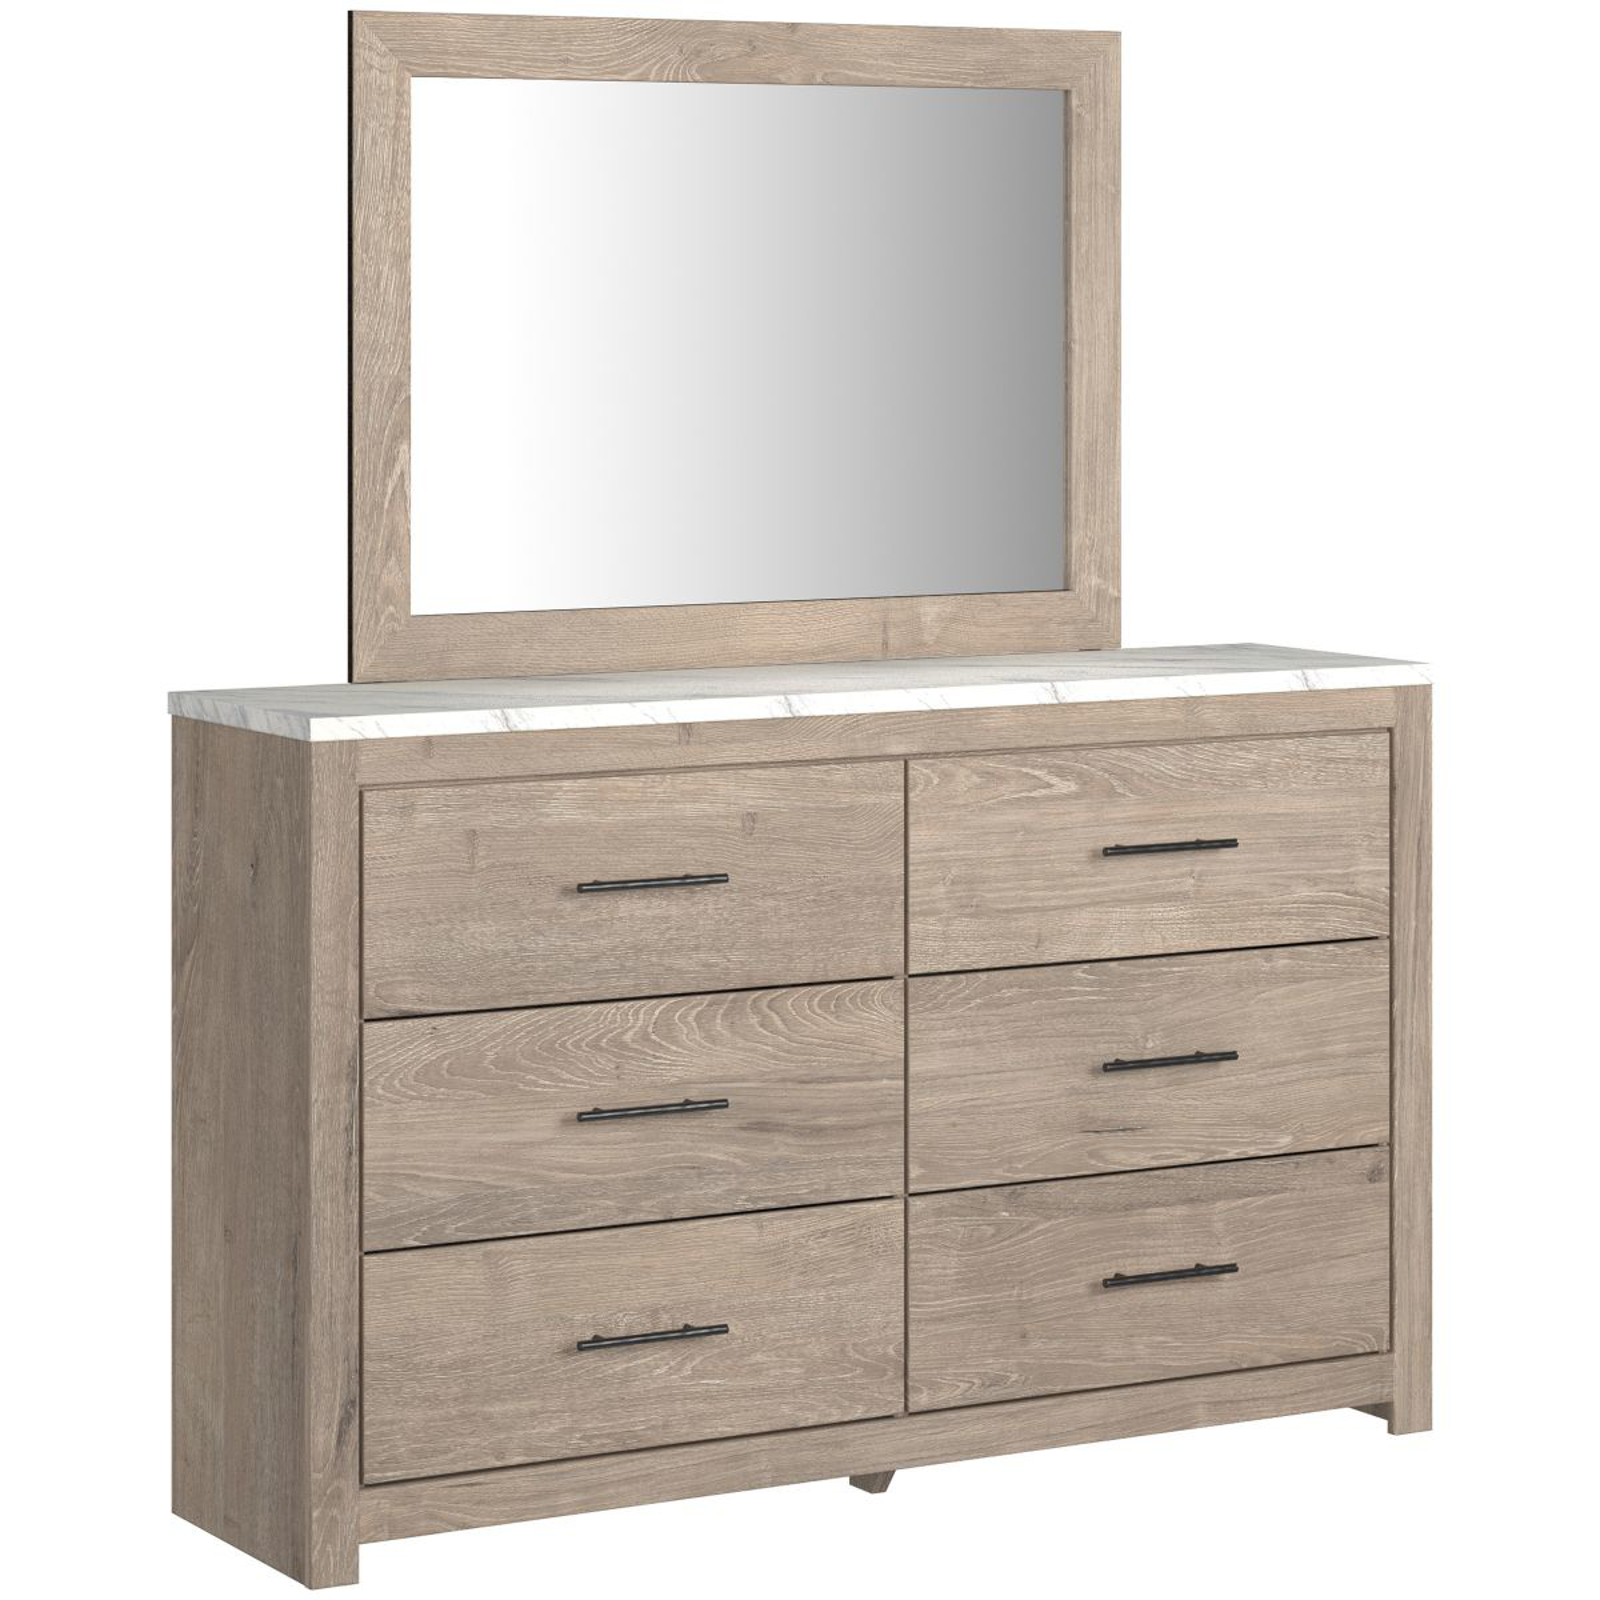 Picture of Senniberg Dresser & Mirror